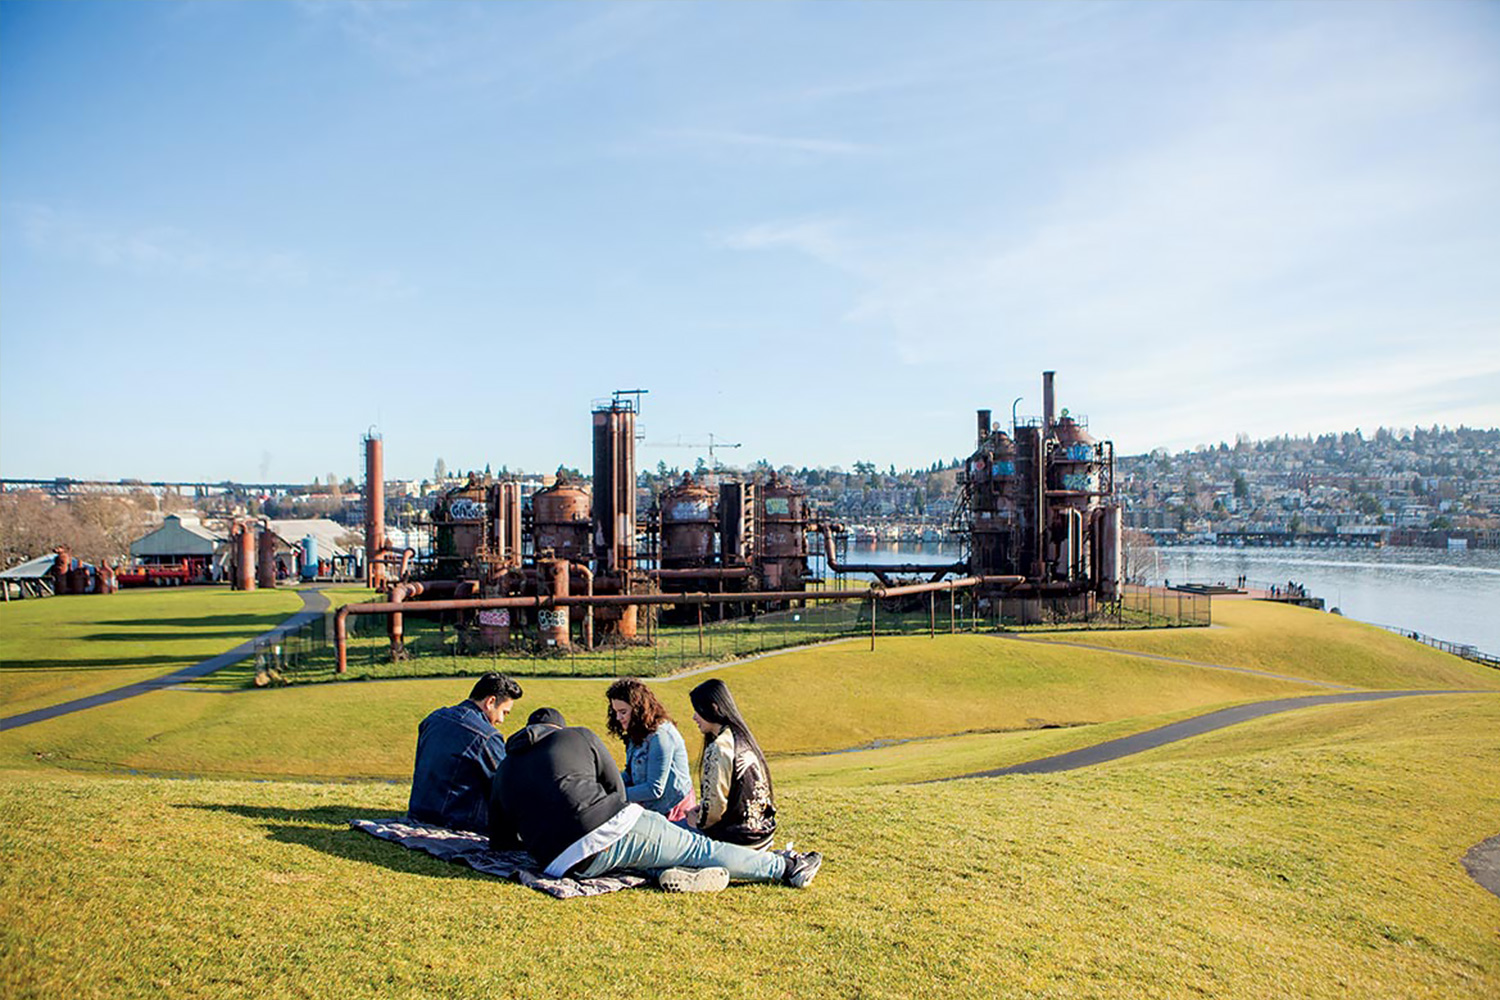 Students sitting on the grass in Gasworks Park, another fun thing to do in Seattle